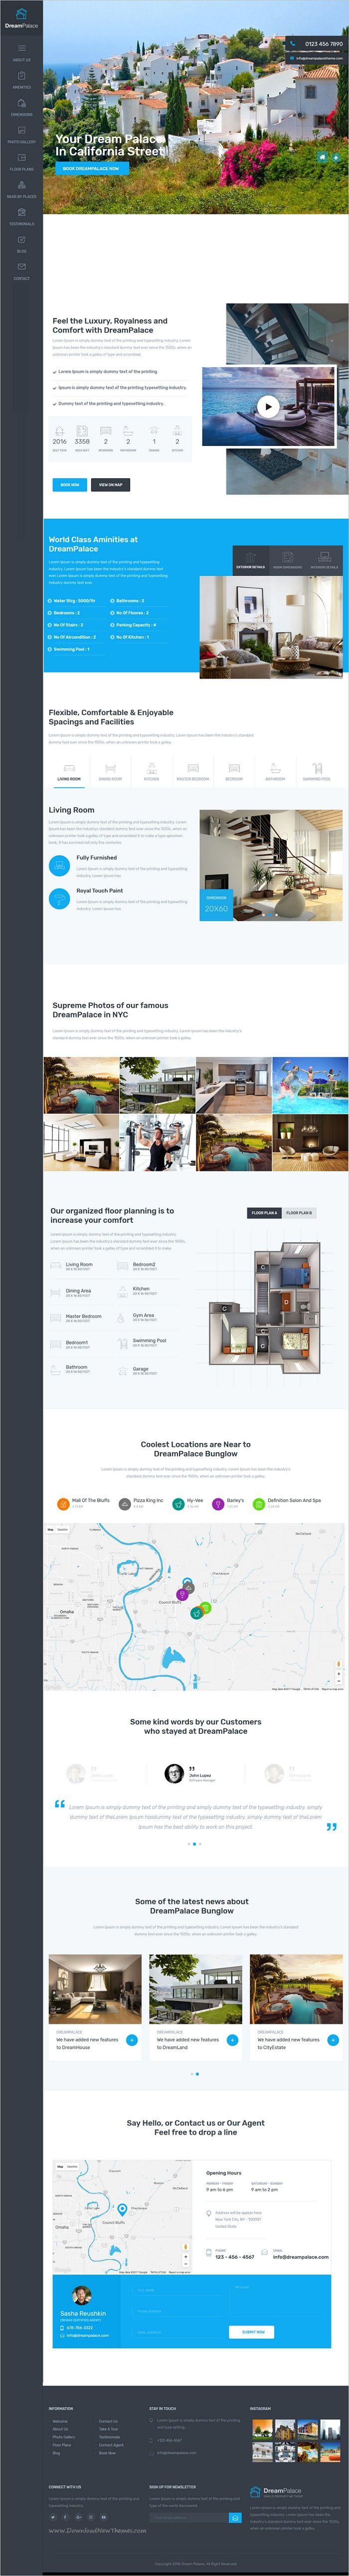 DreamPlace is a modern and trendy design 4in1 #WordPress theme for single property #realestate, #renting or selling villa and apartments websites download now➩  https://themeforest.net/item/dreampalace-single-property-real-estate-theme/19193885?ref=Datasata